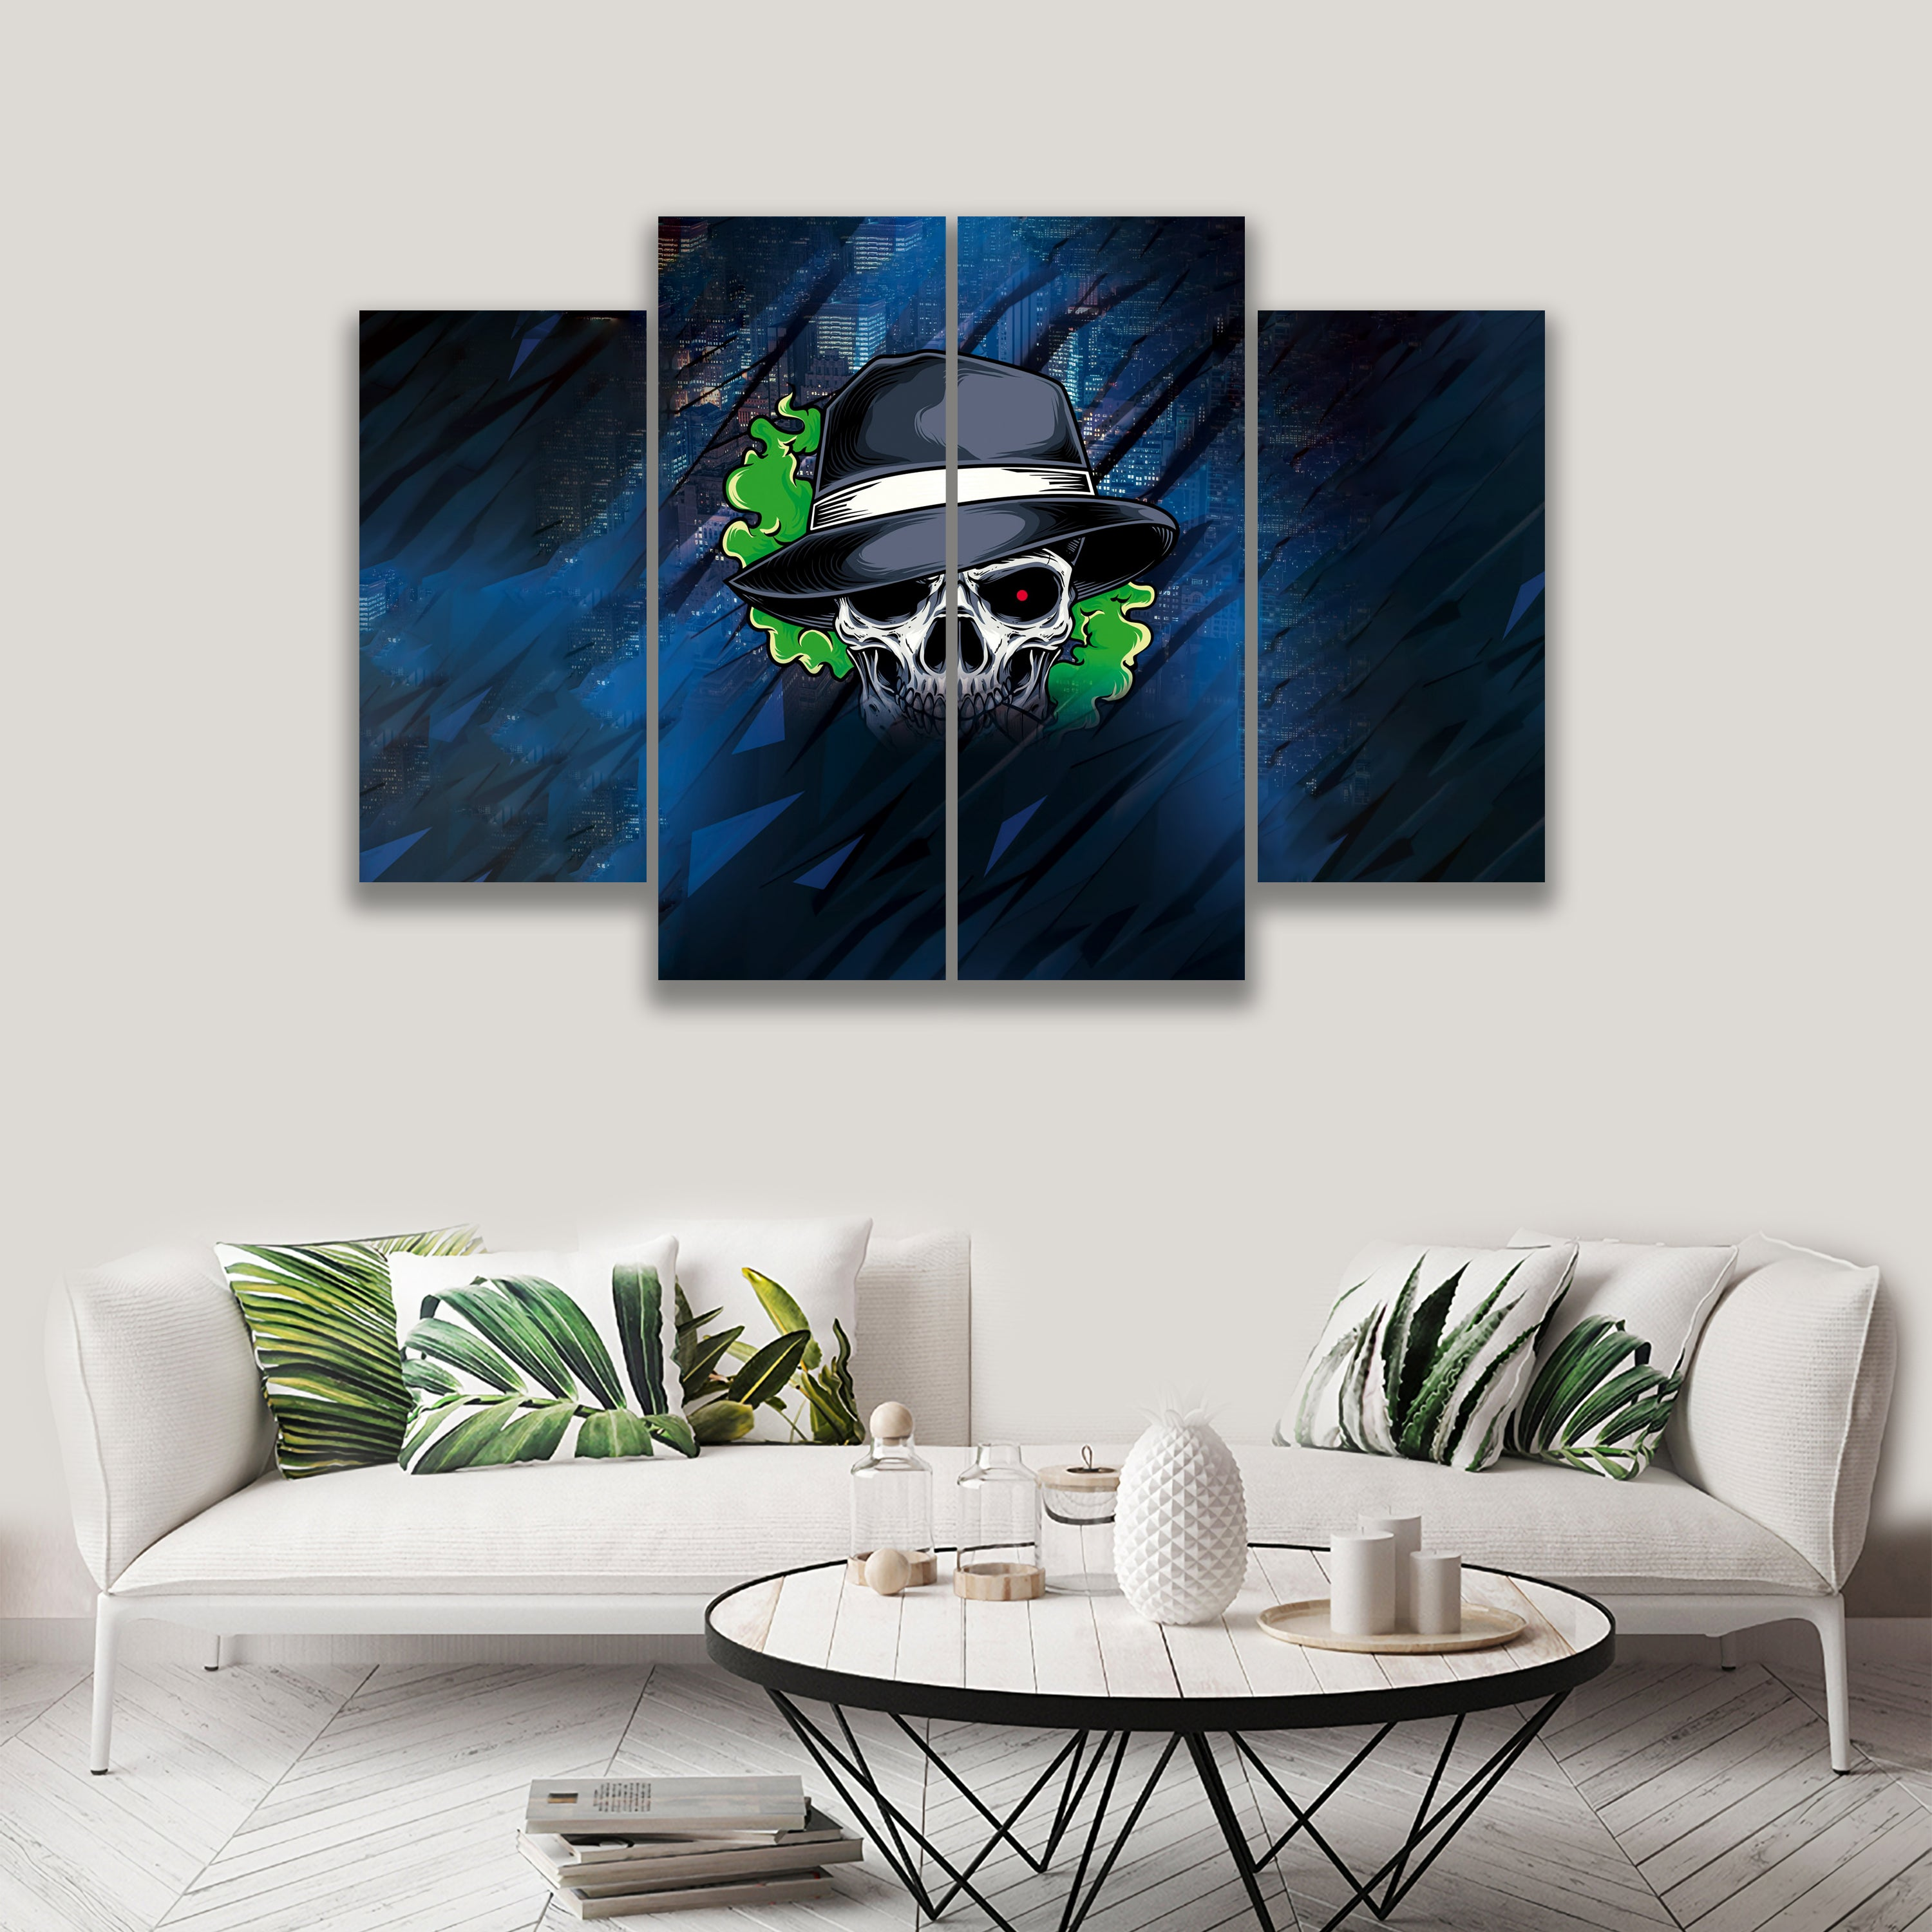 4 PANEL PAINTING SKULL ON CANVAS WALL CP003XQ